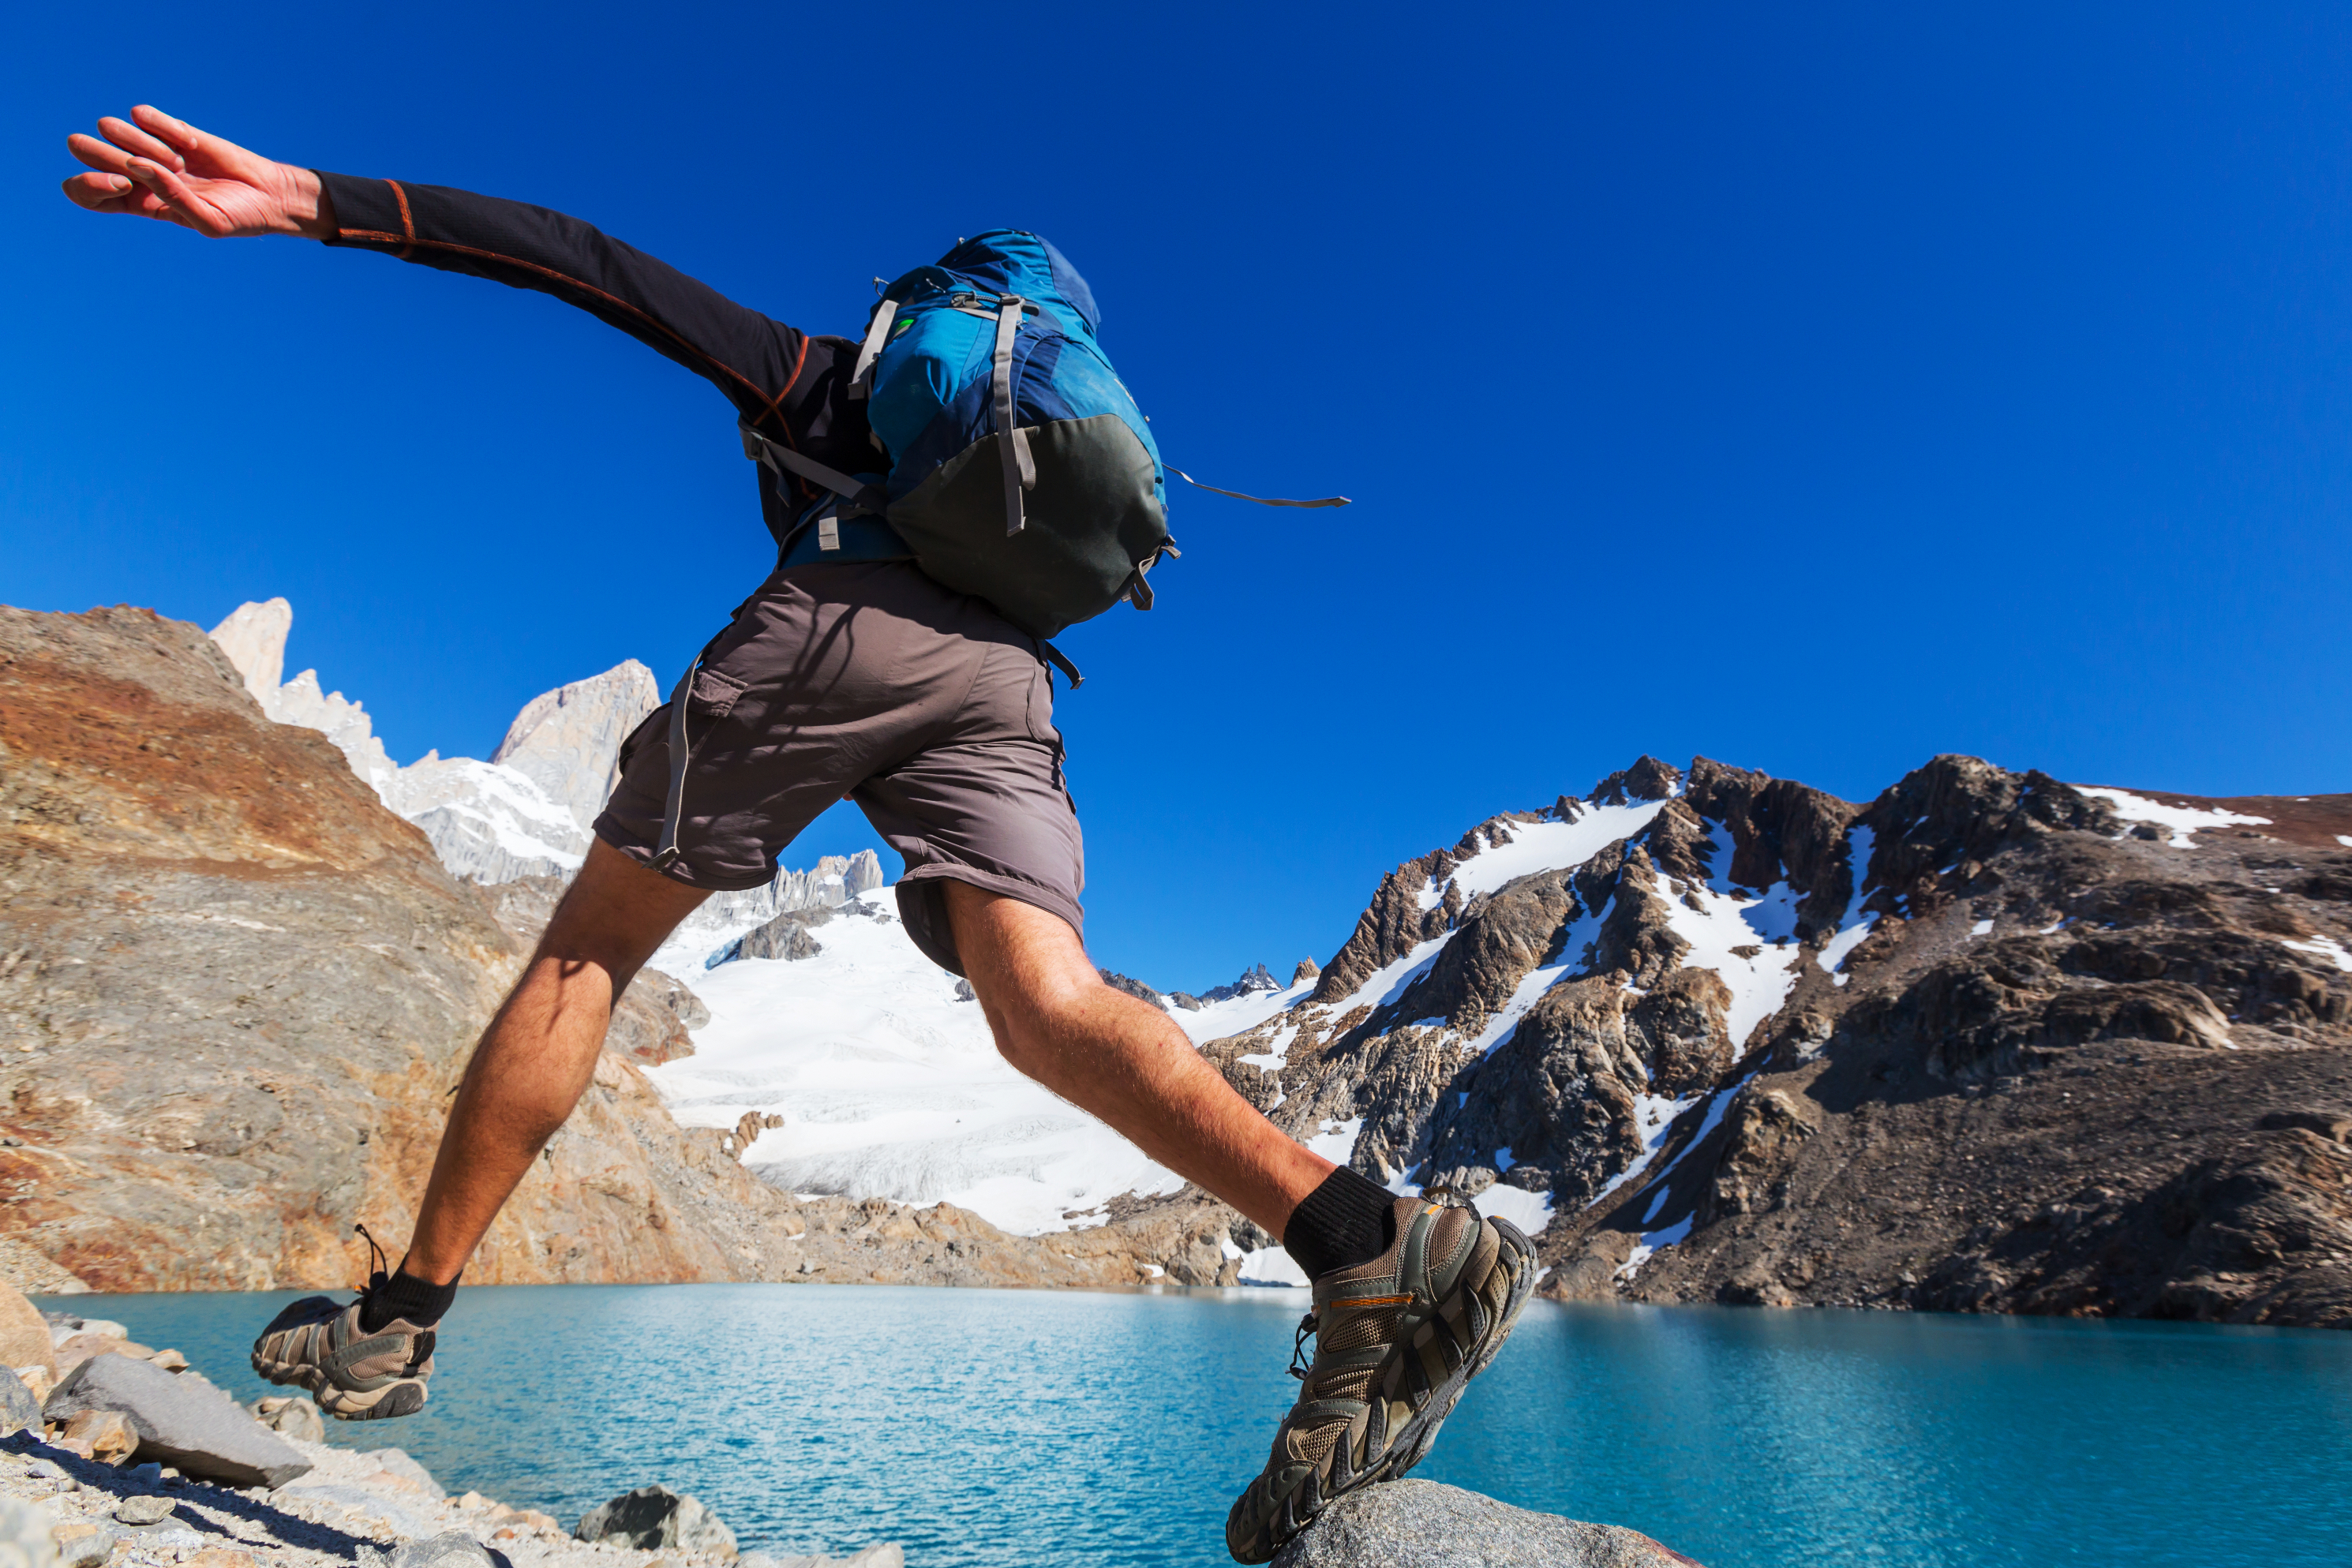 Man jumping on rocks during a hike in Patagonia